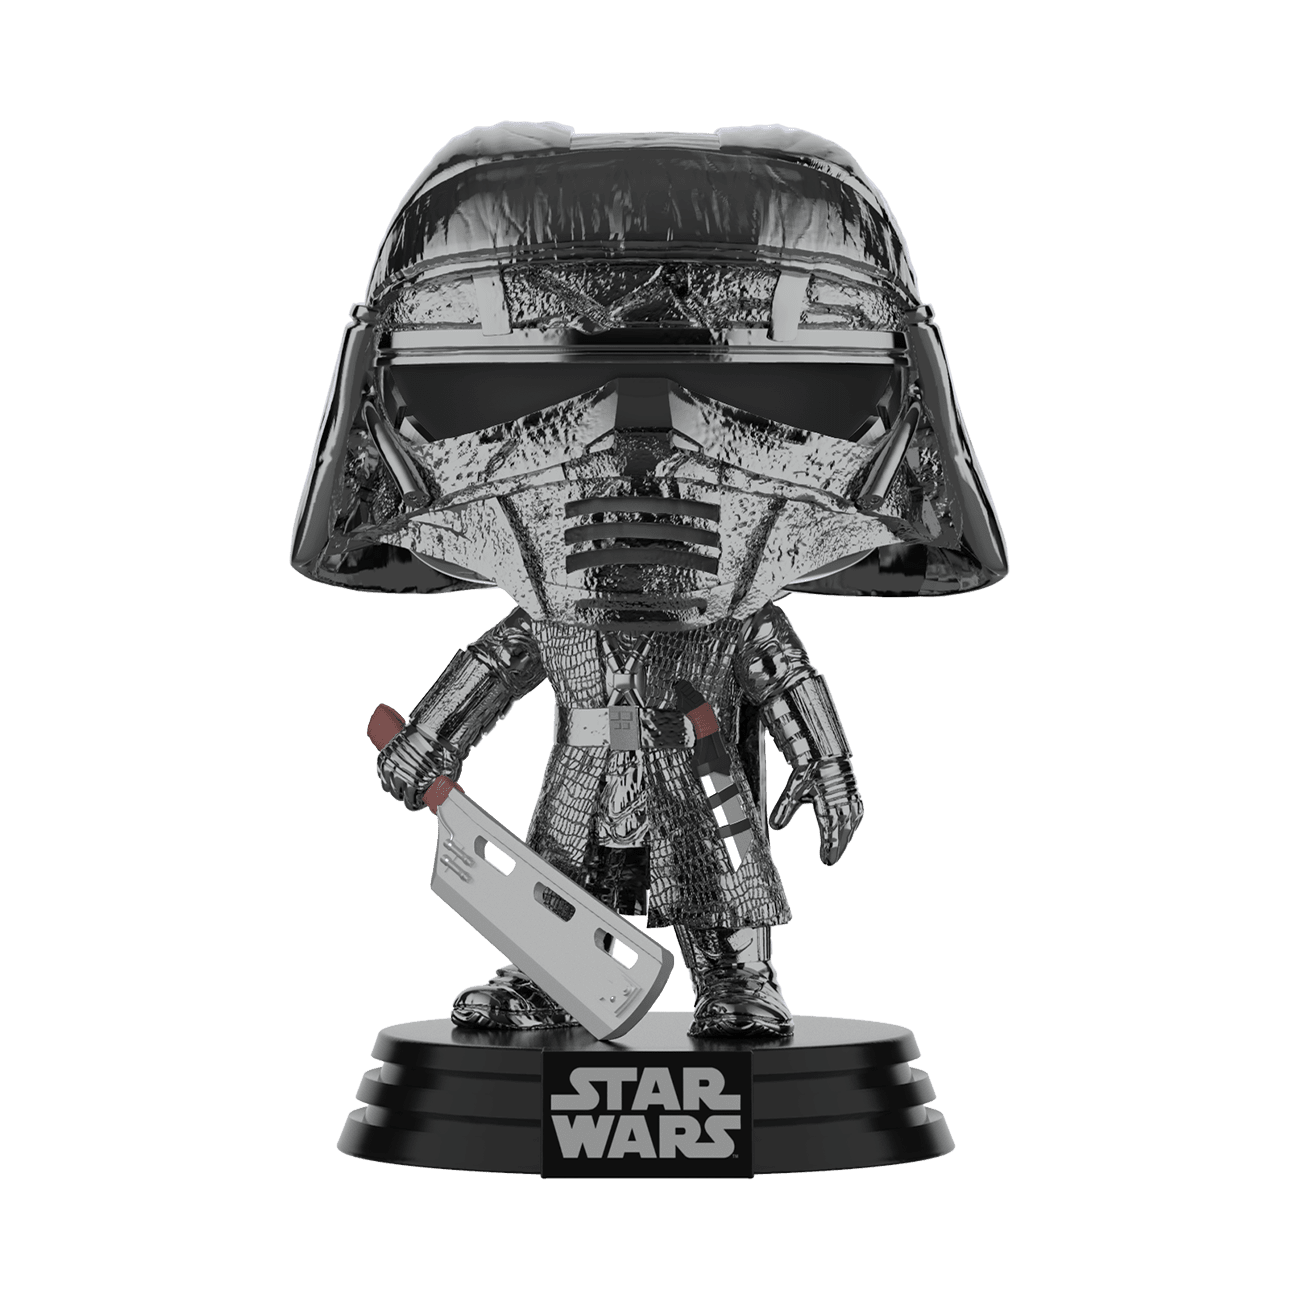 PRE-ORDER Star Wars: The Rise of Skywalker Hematite Chrome Knight of Ren Blade Pop! Vinyl Figure